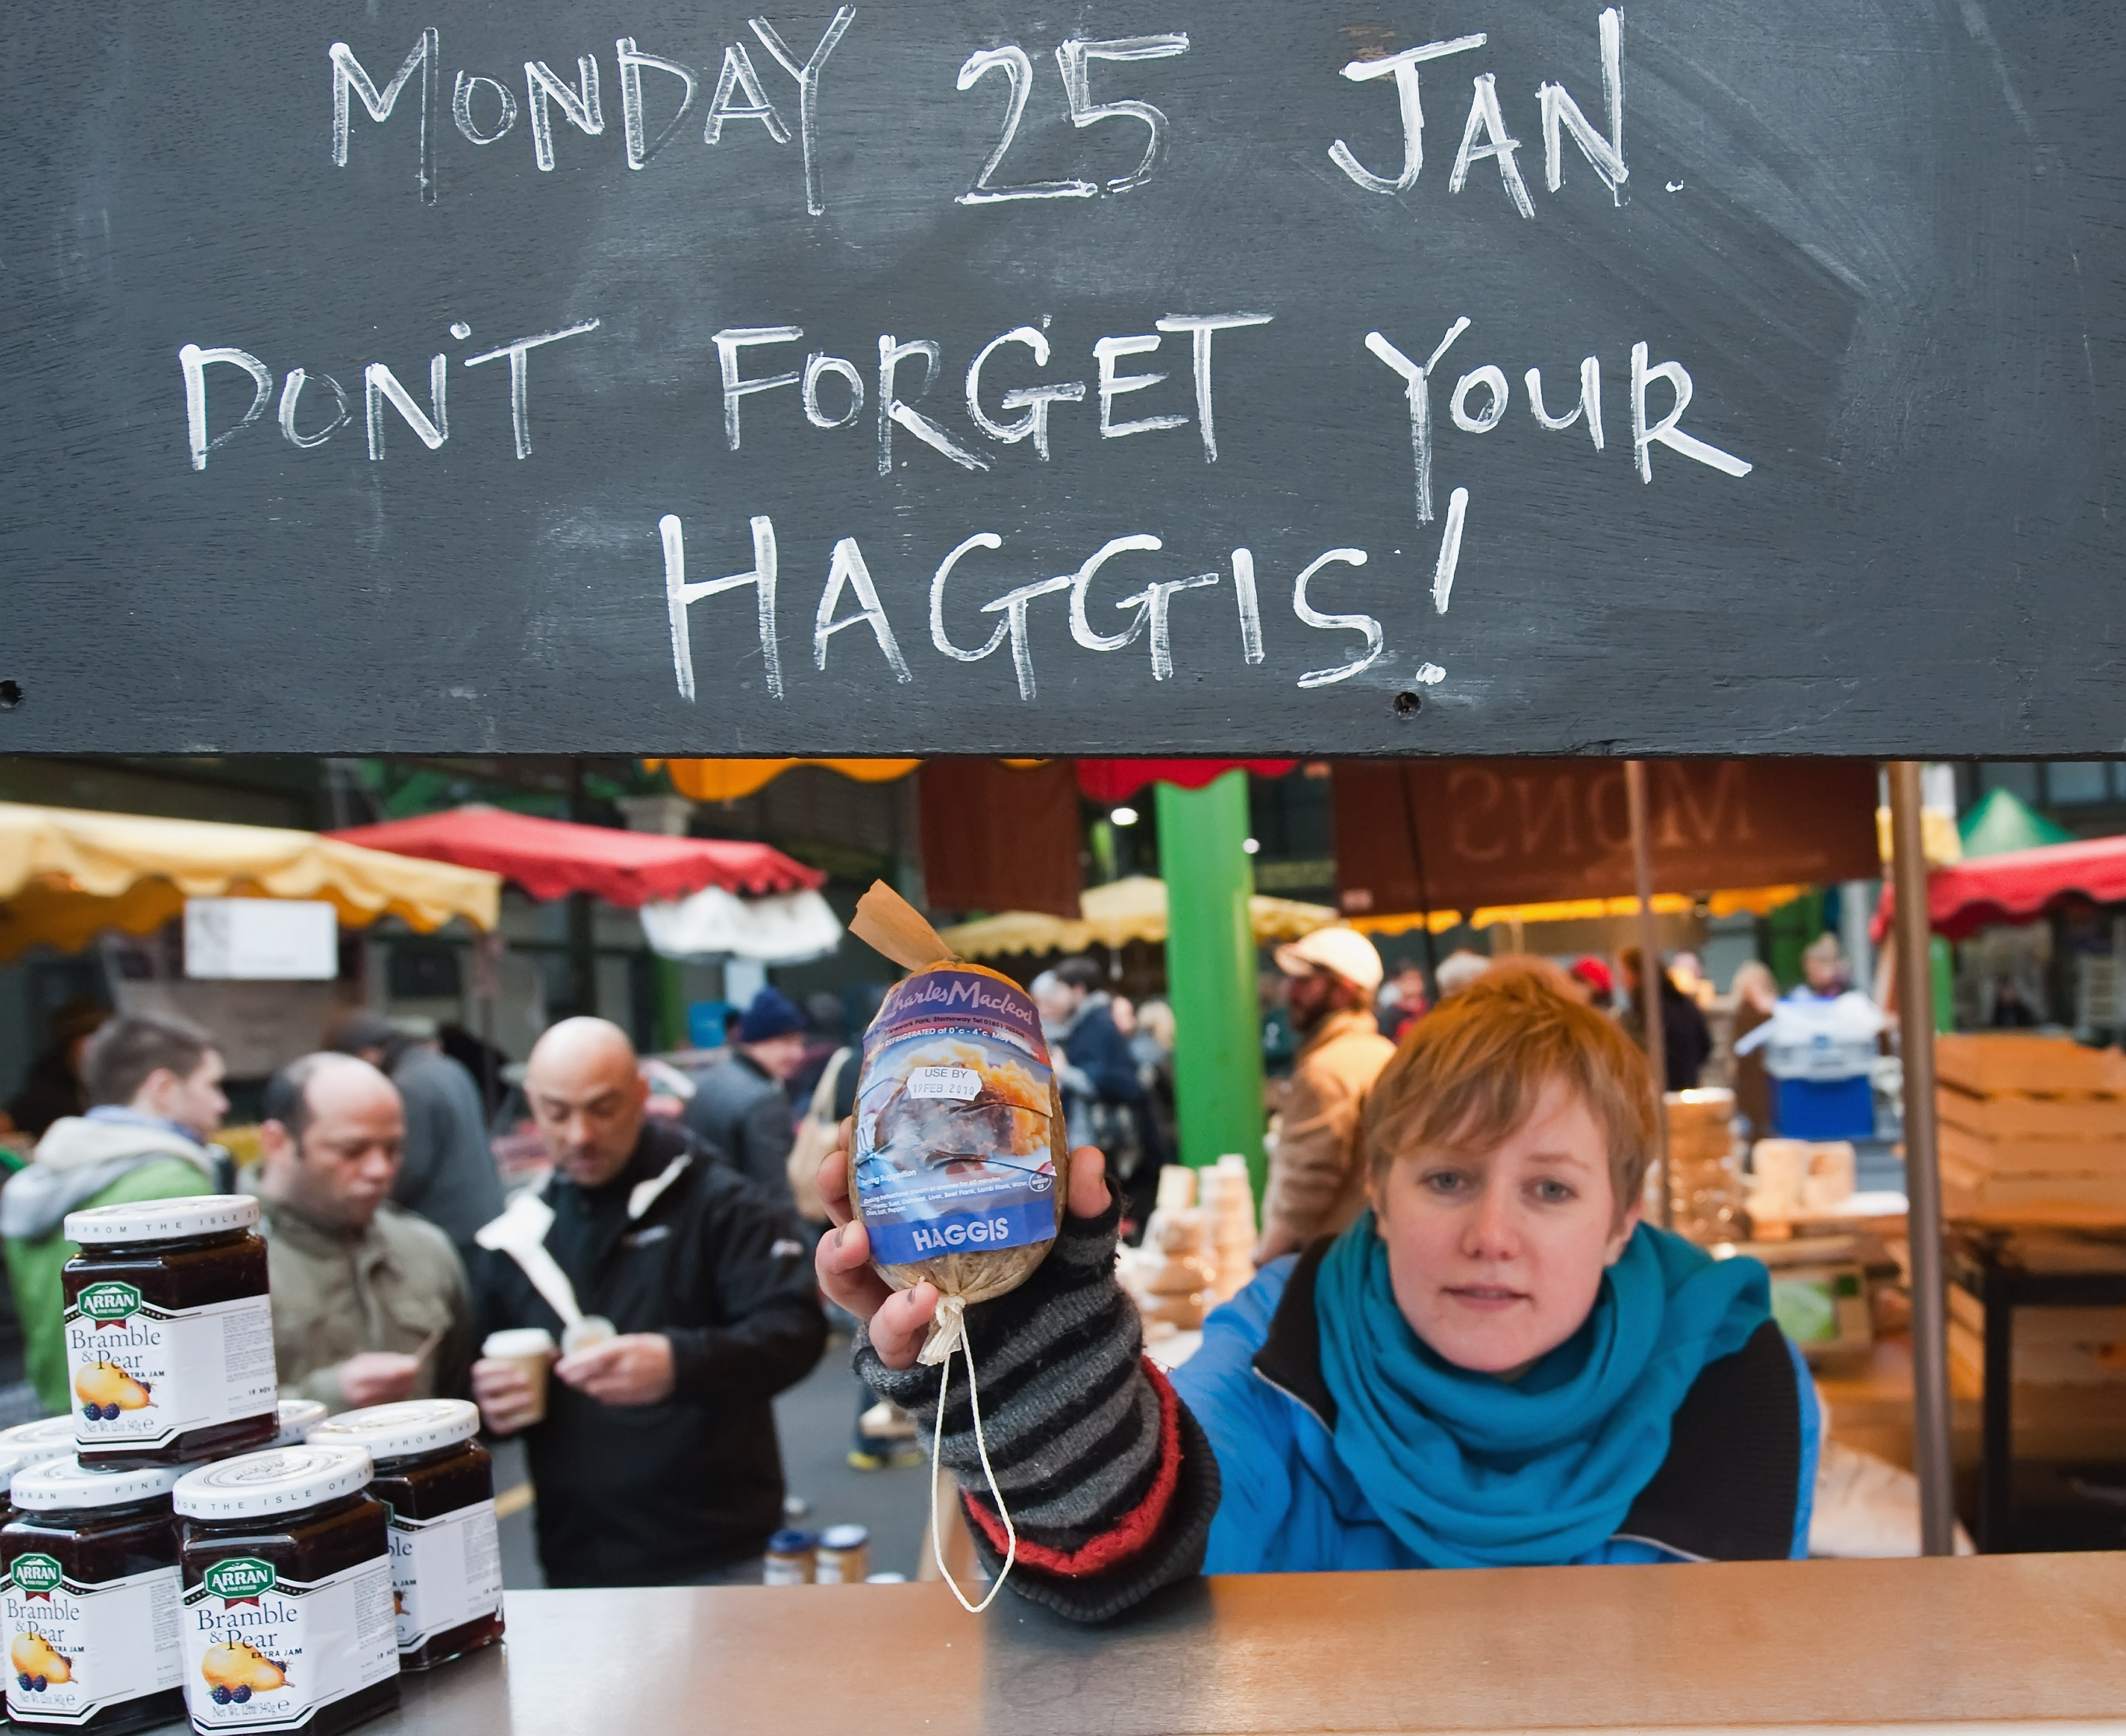 LONDON - JANUARY 23: Haggis is sold at a butcher shop to people who will celebrate Burns night on Monday on January 23, 2010 in London, England. Scots across the world annually celebrate on January 25th the life of Robert Burns, the country's most famous bard, with recitations of his poetry, the eating of haggis and imbibing of whisky. (Photo by Marco Secchi/Getty Images)